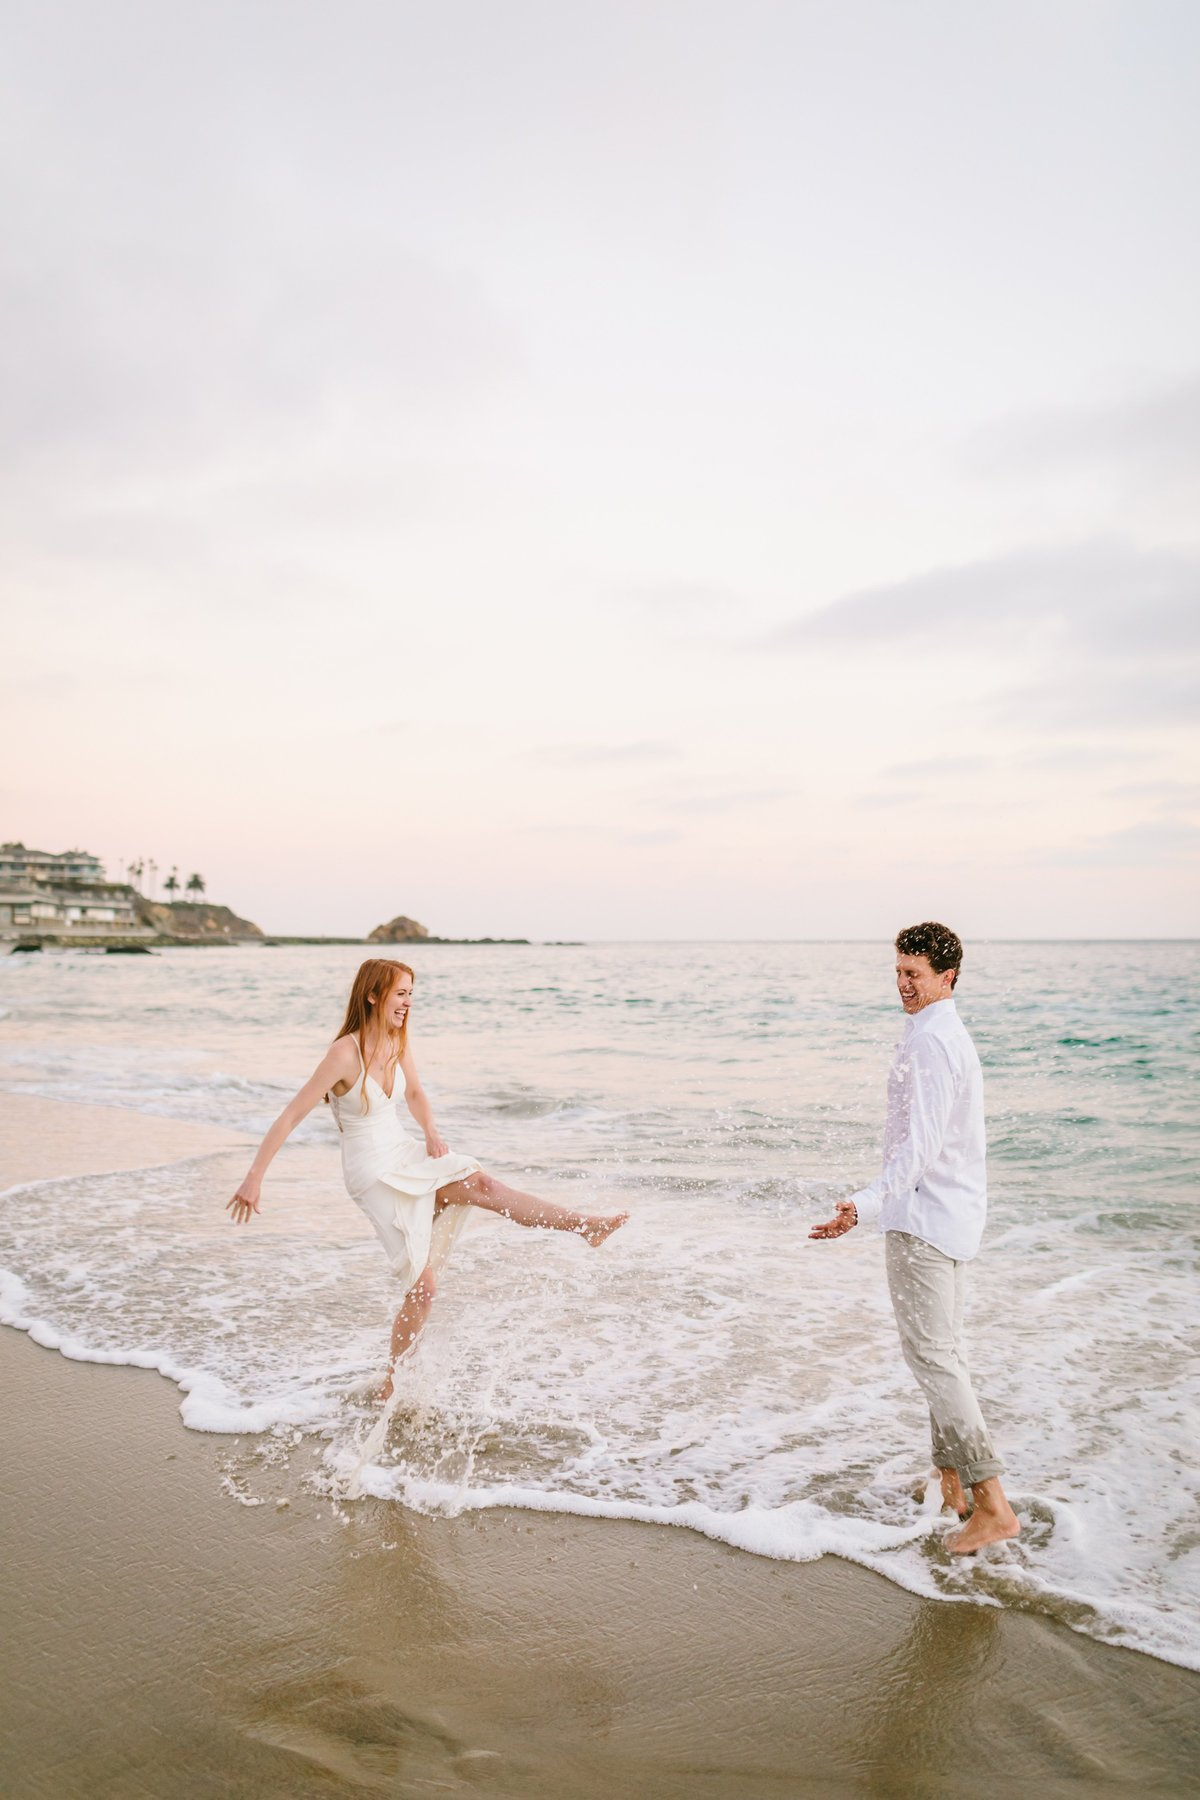 Best California Engagement Photographer-Jodee Debes Photography-100